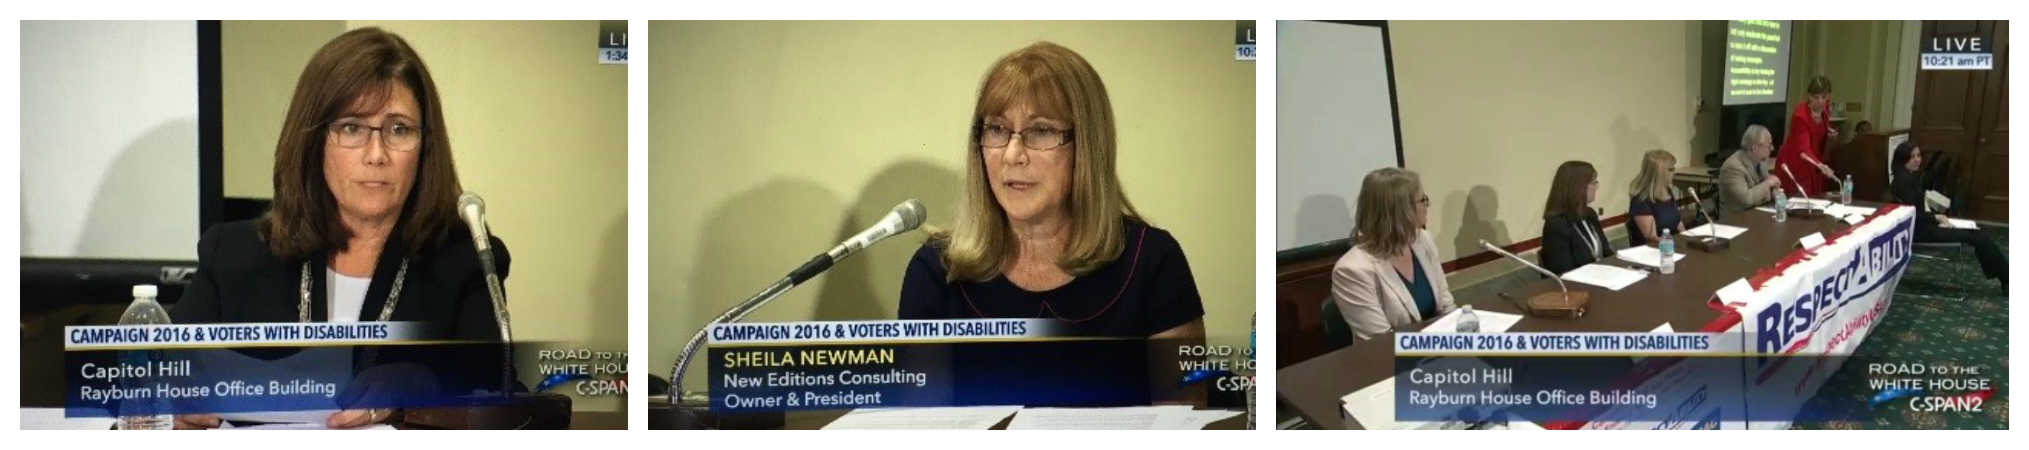 Snapshots of Shelia Newman and Cindy Ryan on CSPAN